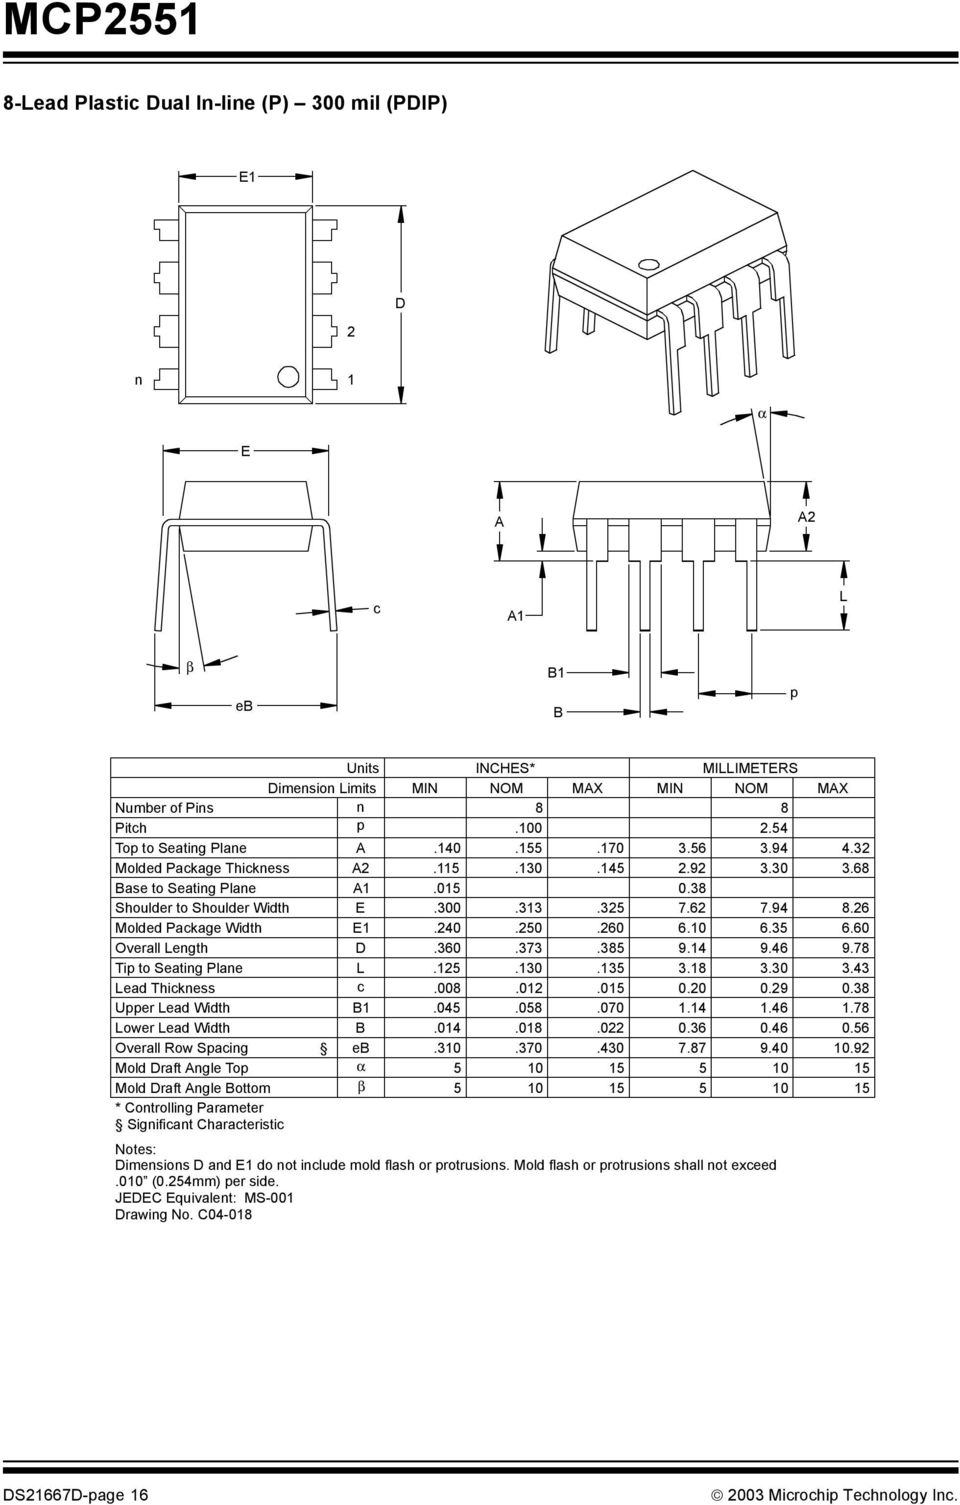 26 Molded Package Width E1.240.250.260 6.10 6.35 6.60 Overall Length D.360.373.385 9.14 9.46 9.78 Tip to Seating Plane L.125.130.135 3.18 3.30 3.43 Lead Thickness c.008.012.015 0.20 0.29 0.